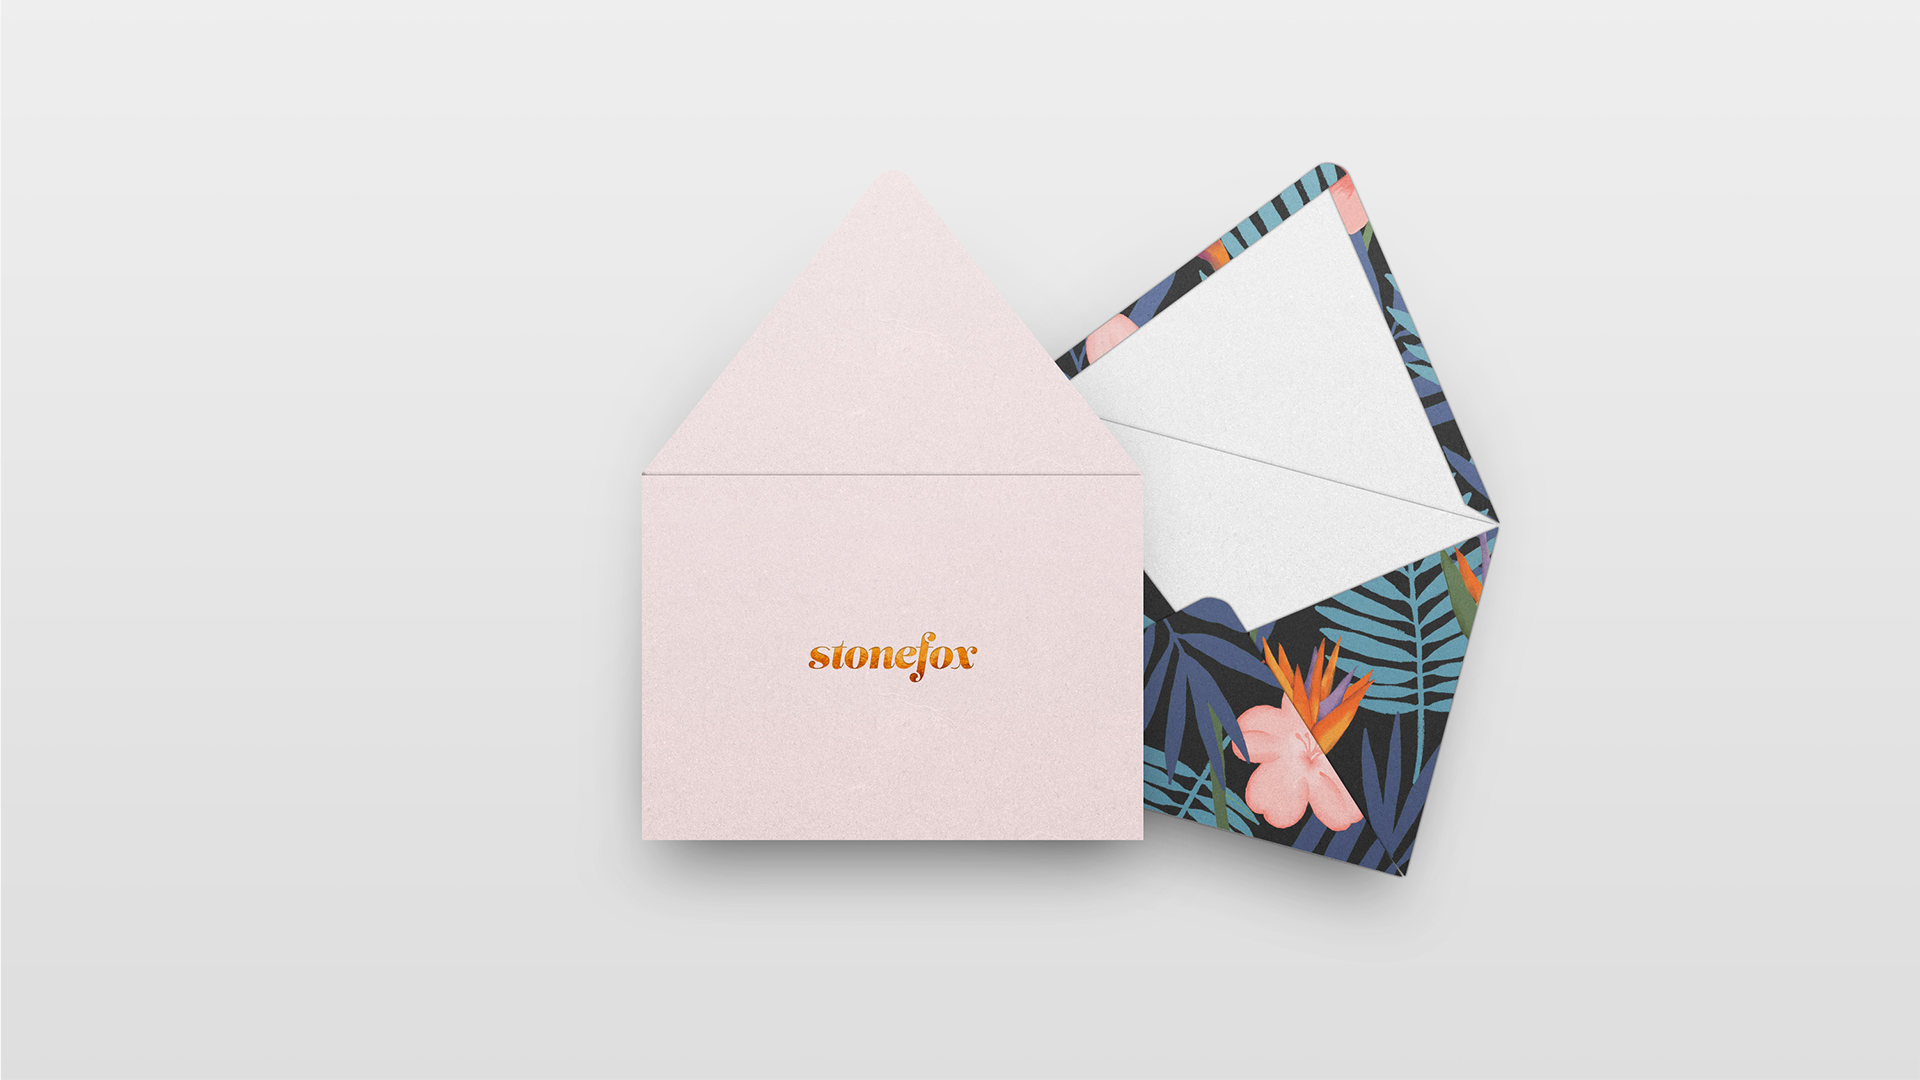 branding, stationery, soft pink, flower pattern, cute, foil, top view, envelopes